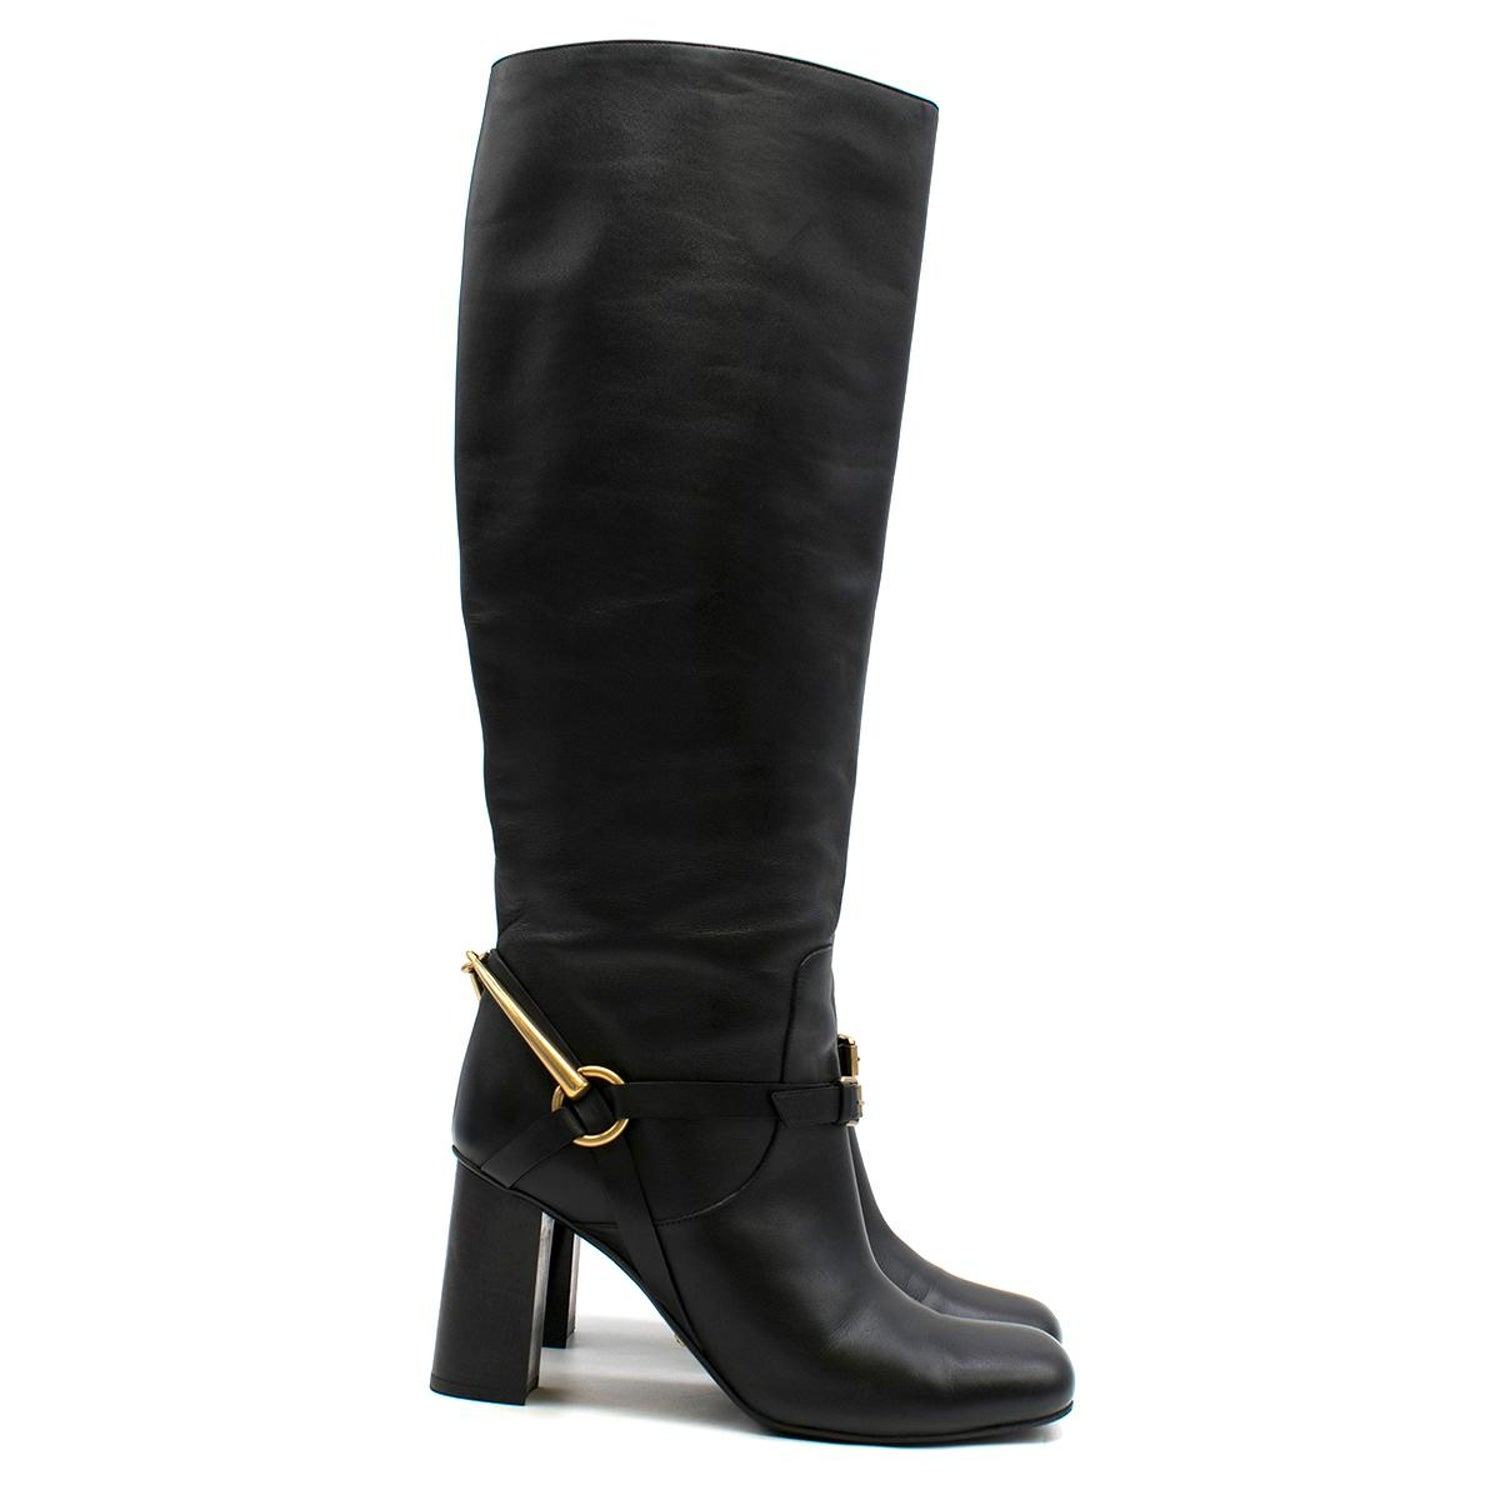 d28632761b1 Gucci stirrup-heel leather boots US 8 For Sale at 1stdibs